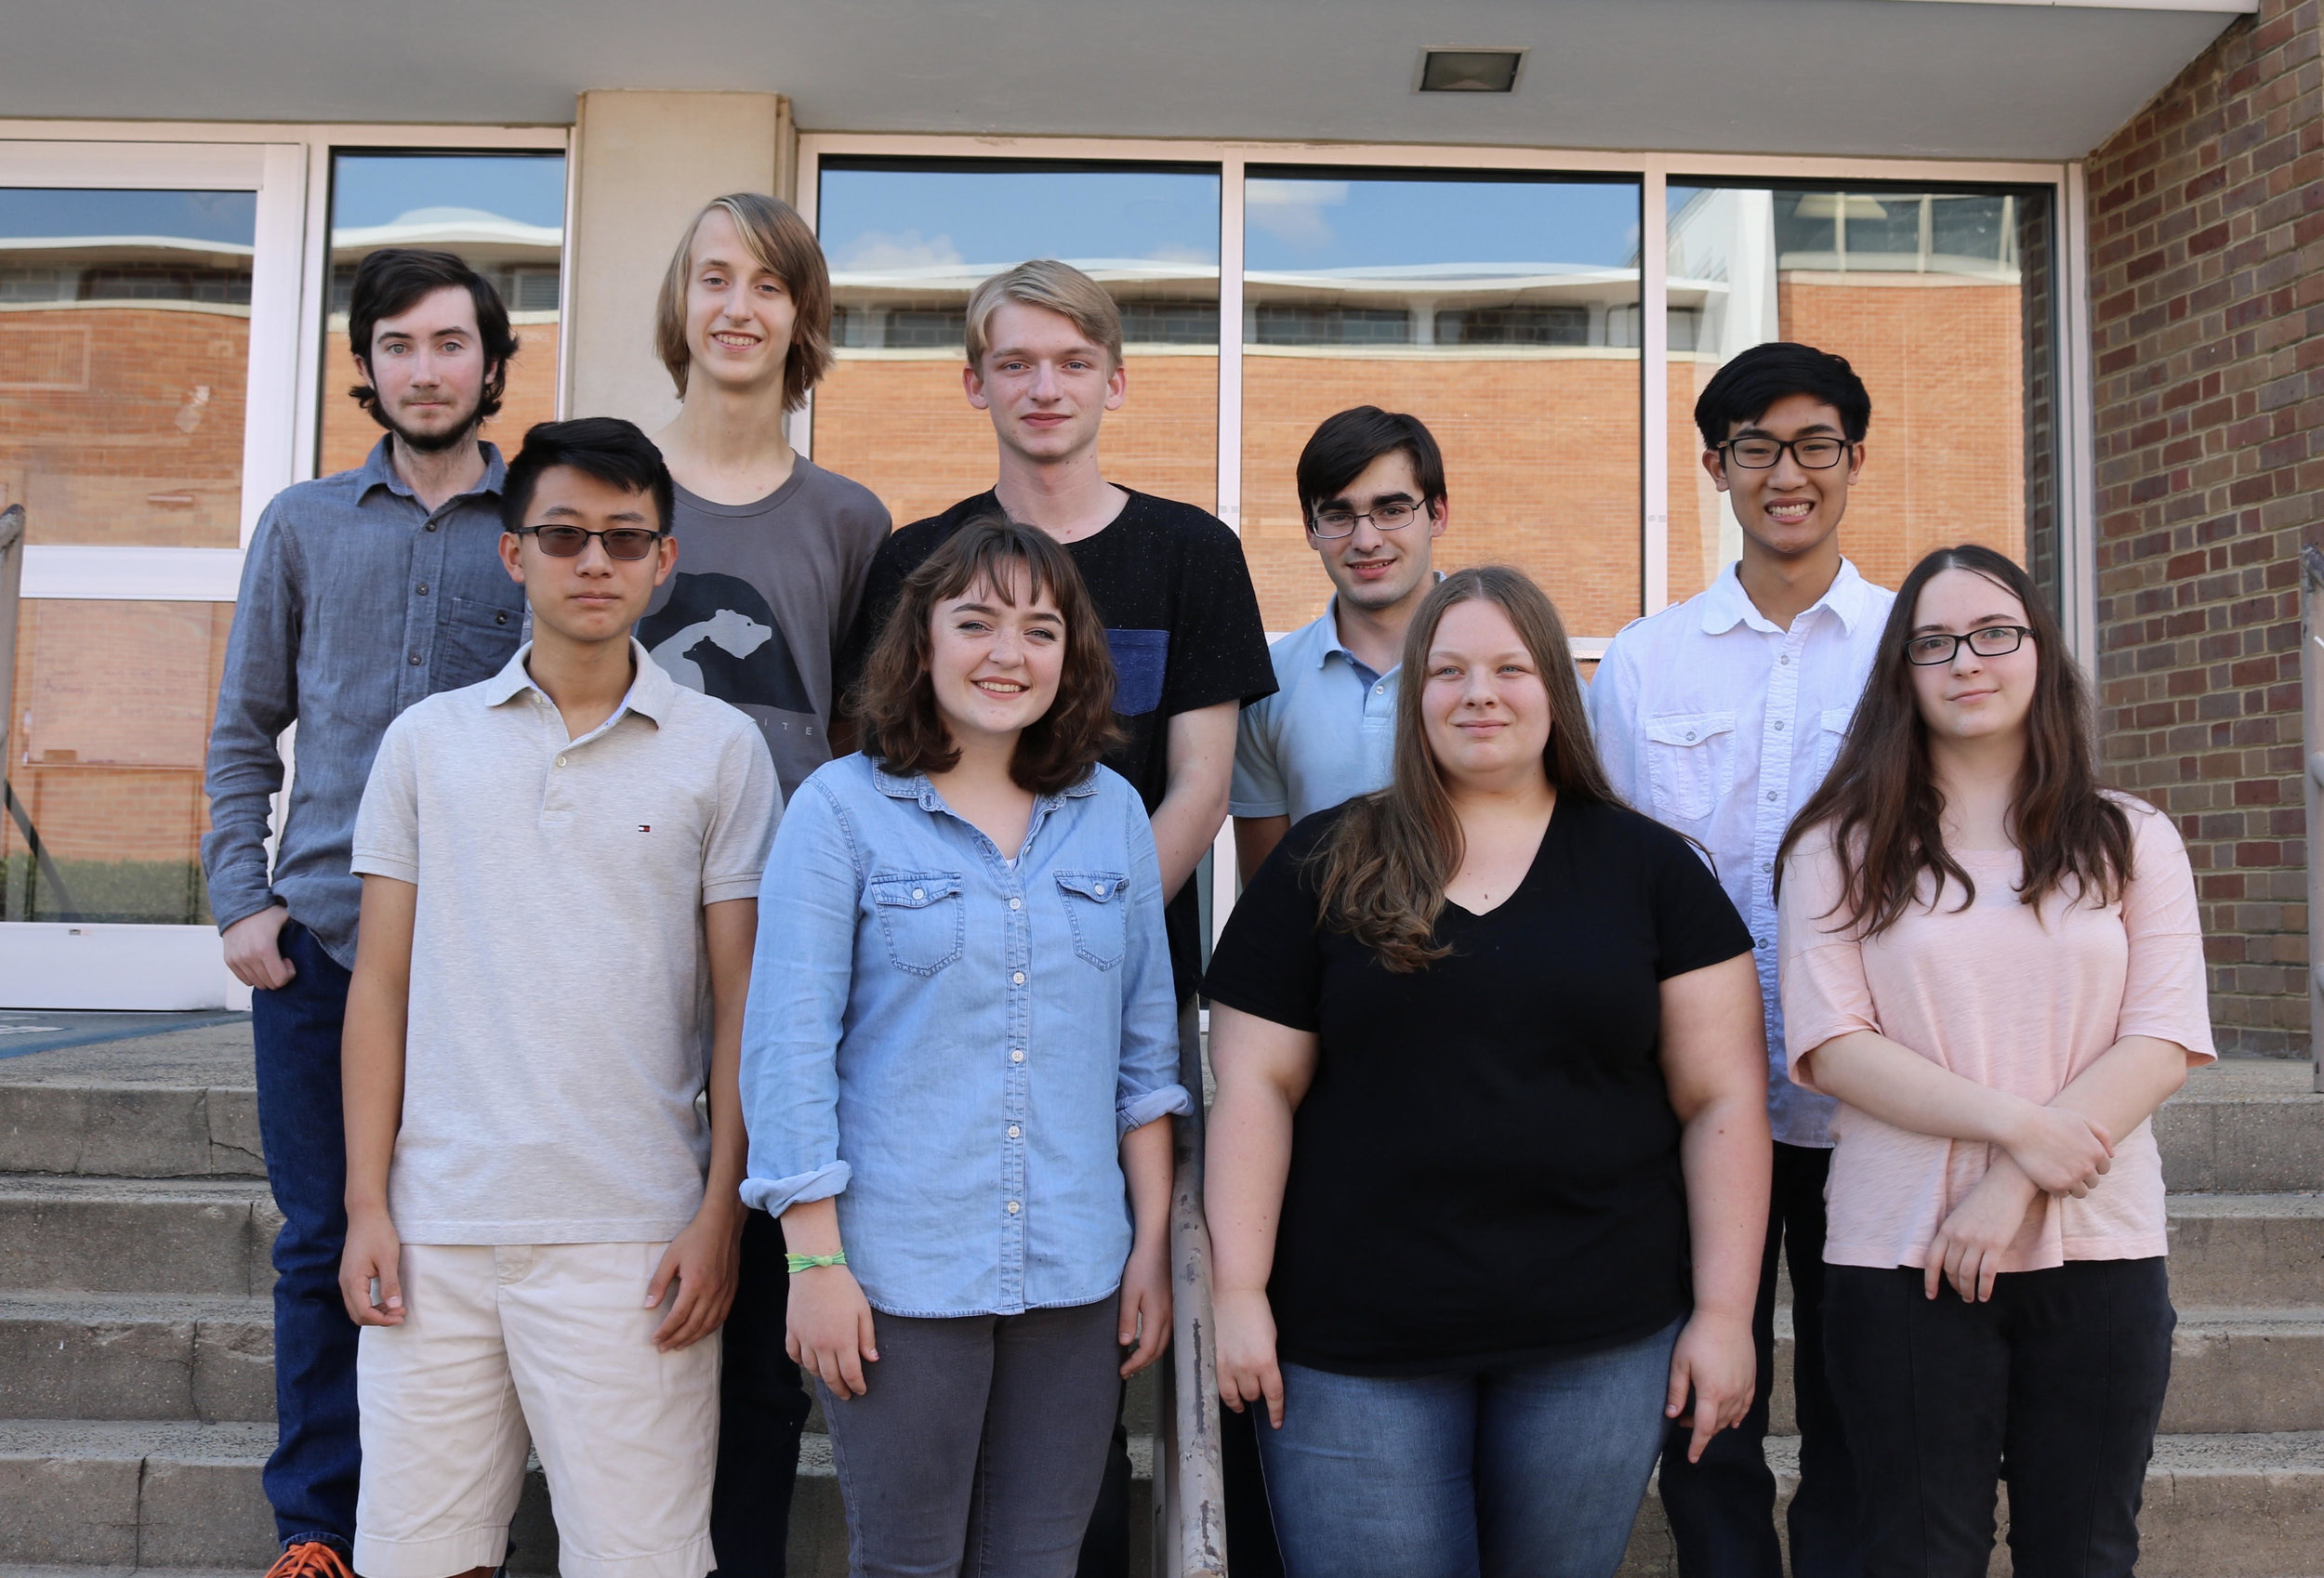 Pictured are the 2017 National Merit Semifinalists with the exceptions of Vivienne Tenev, Leah Pettit, and Jim Zhang.